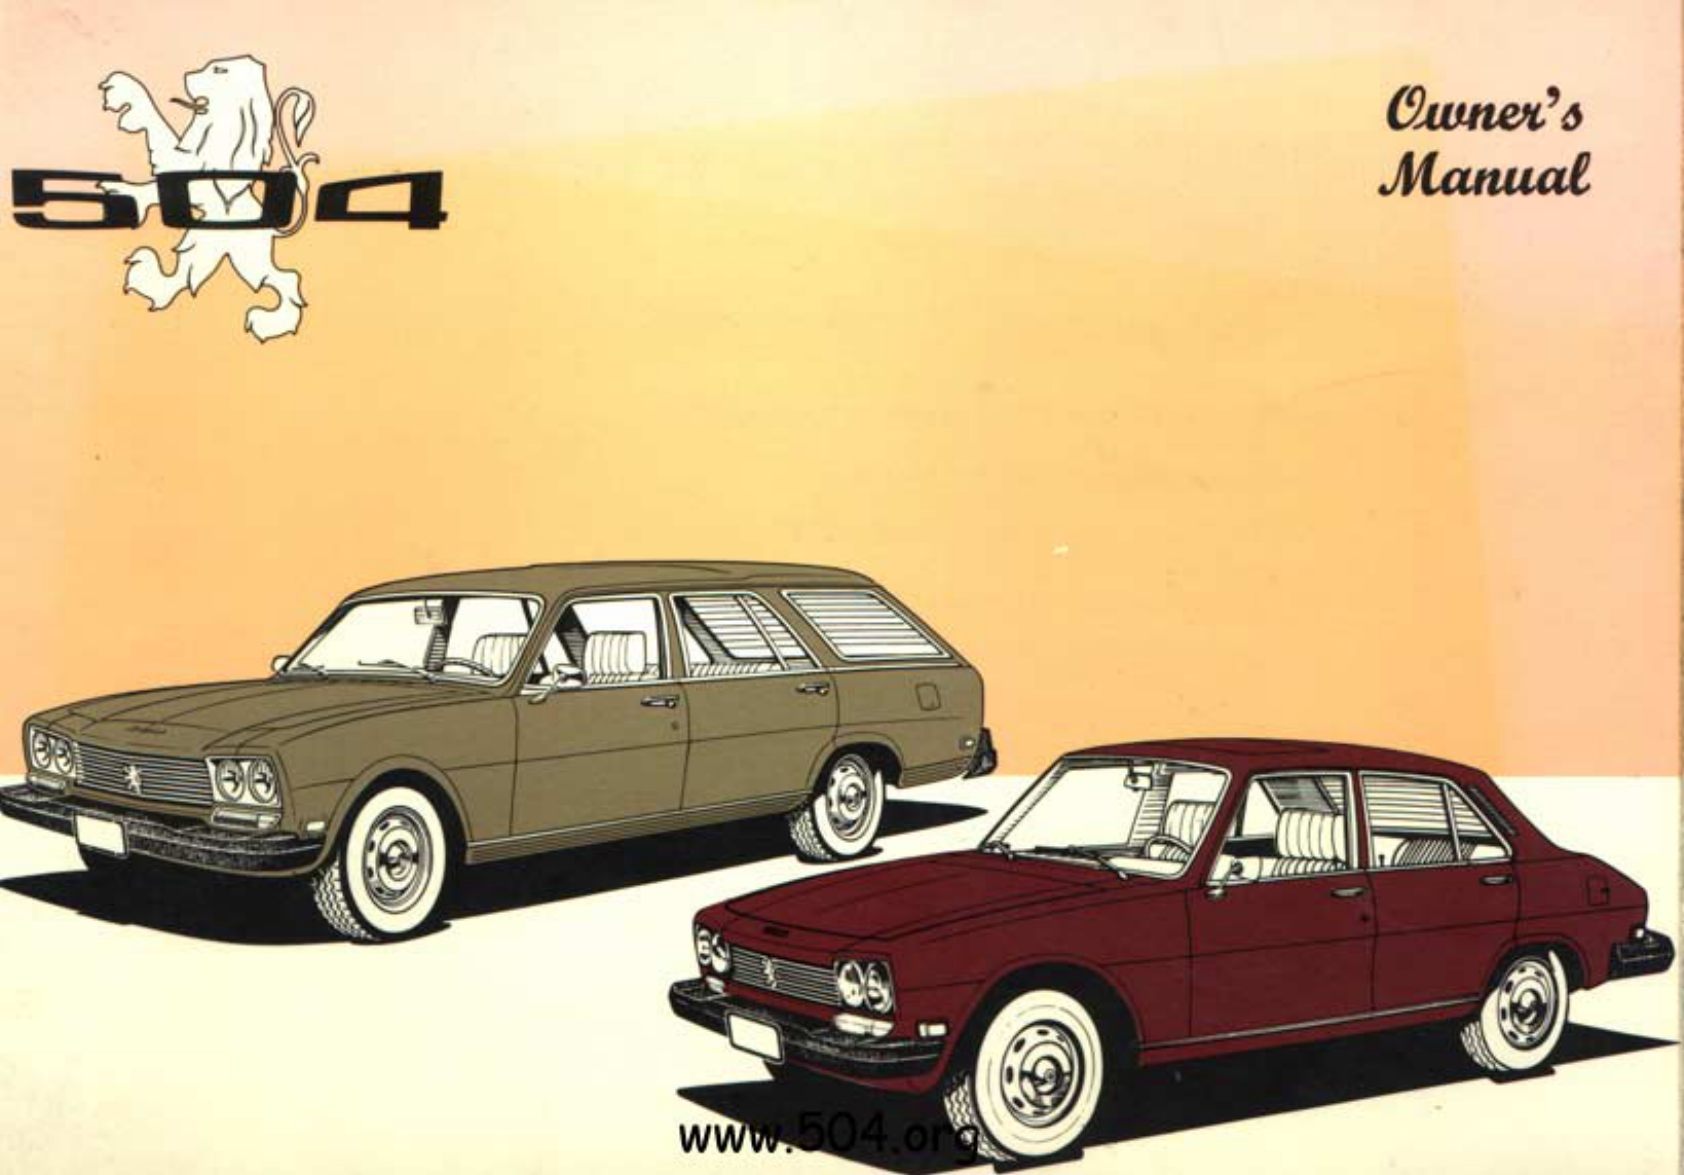 peugeot 504 owners manual pdf rh manuals co